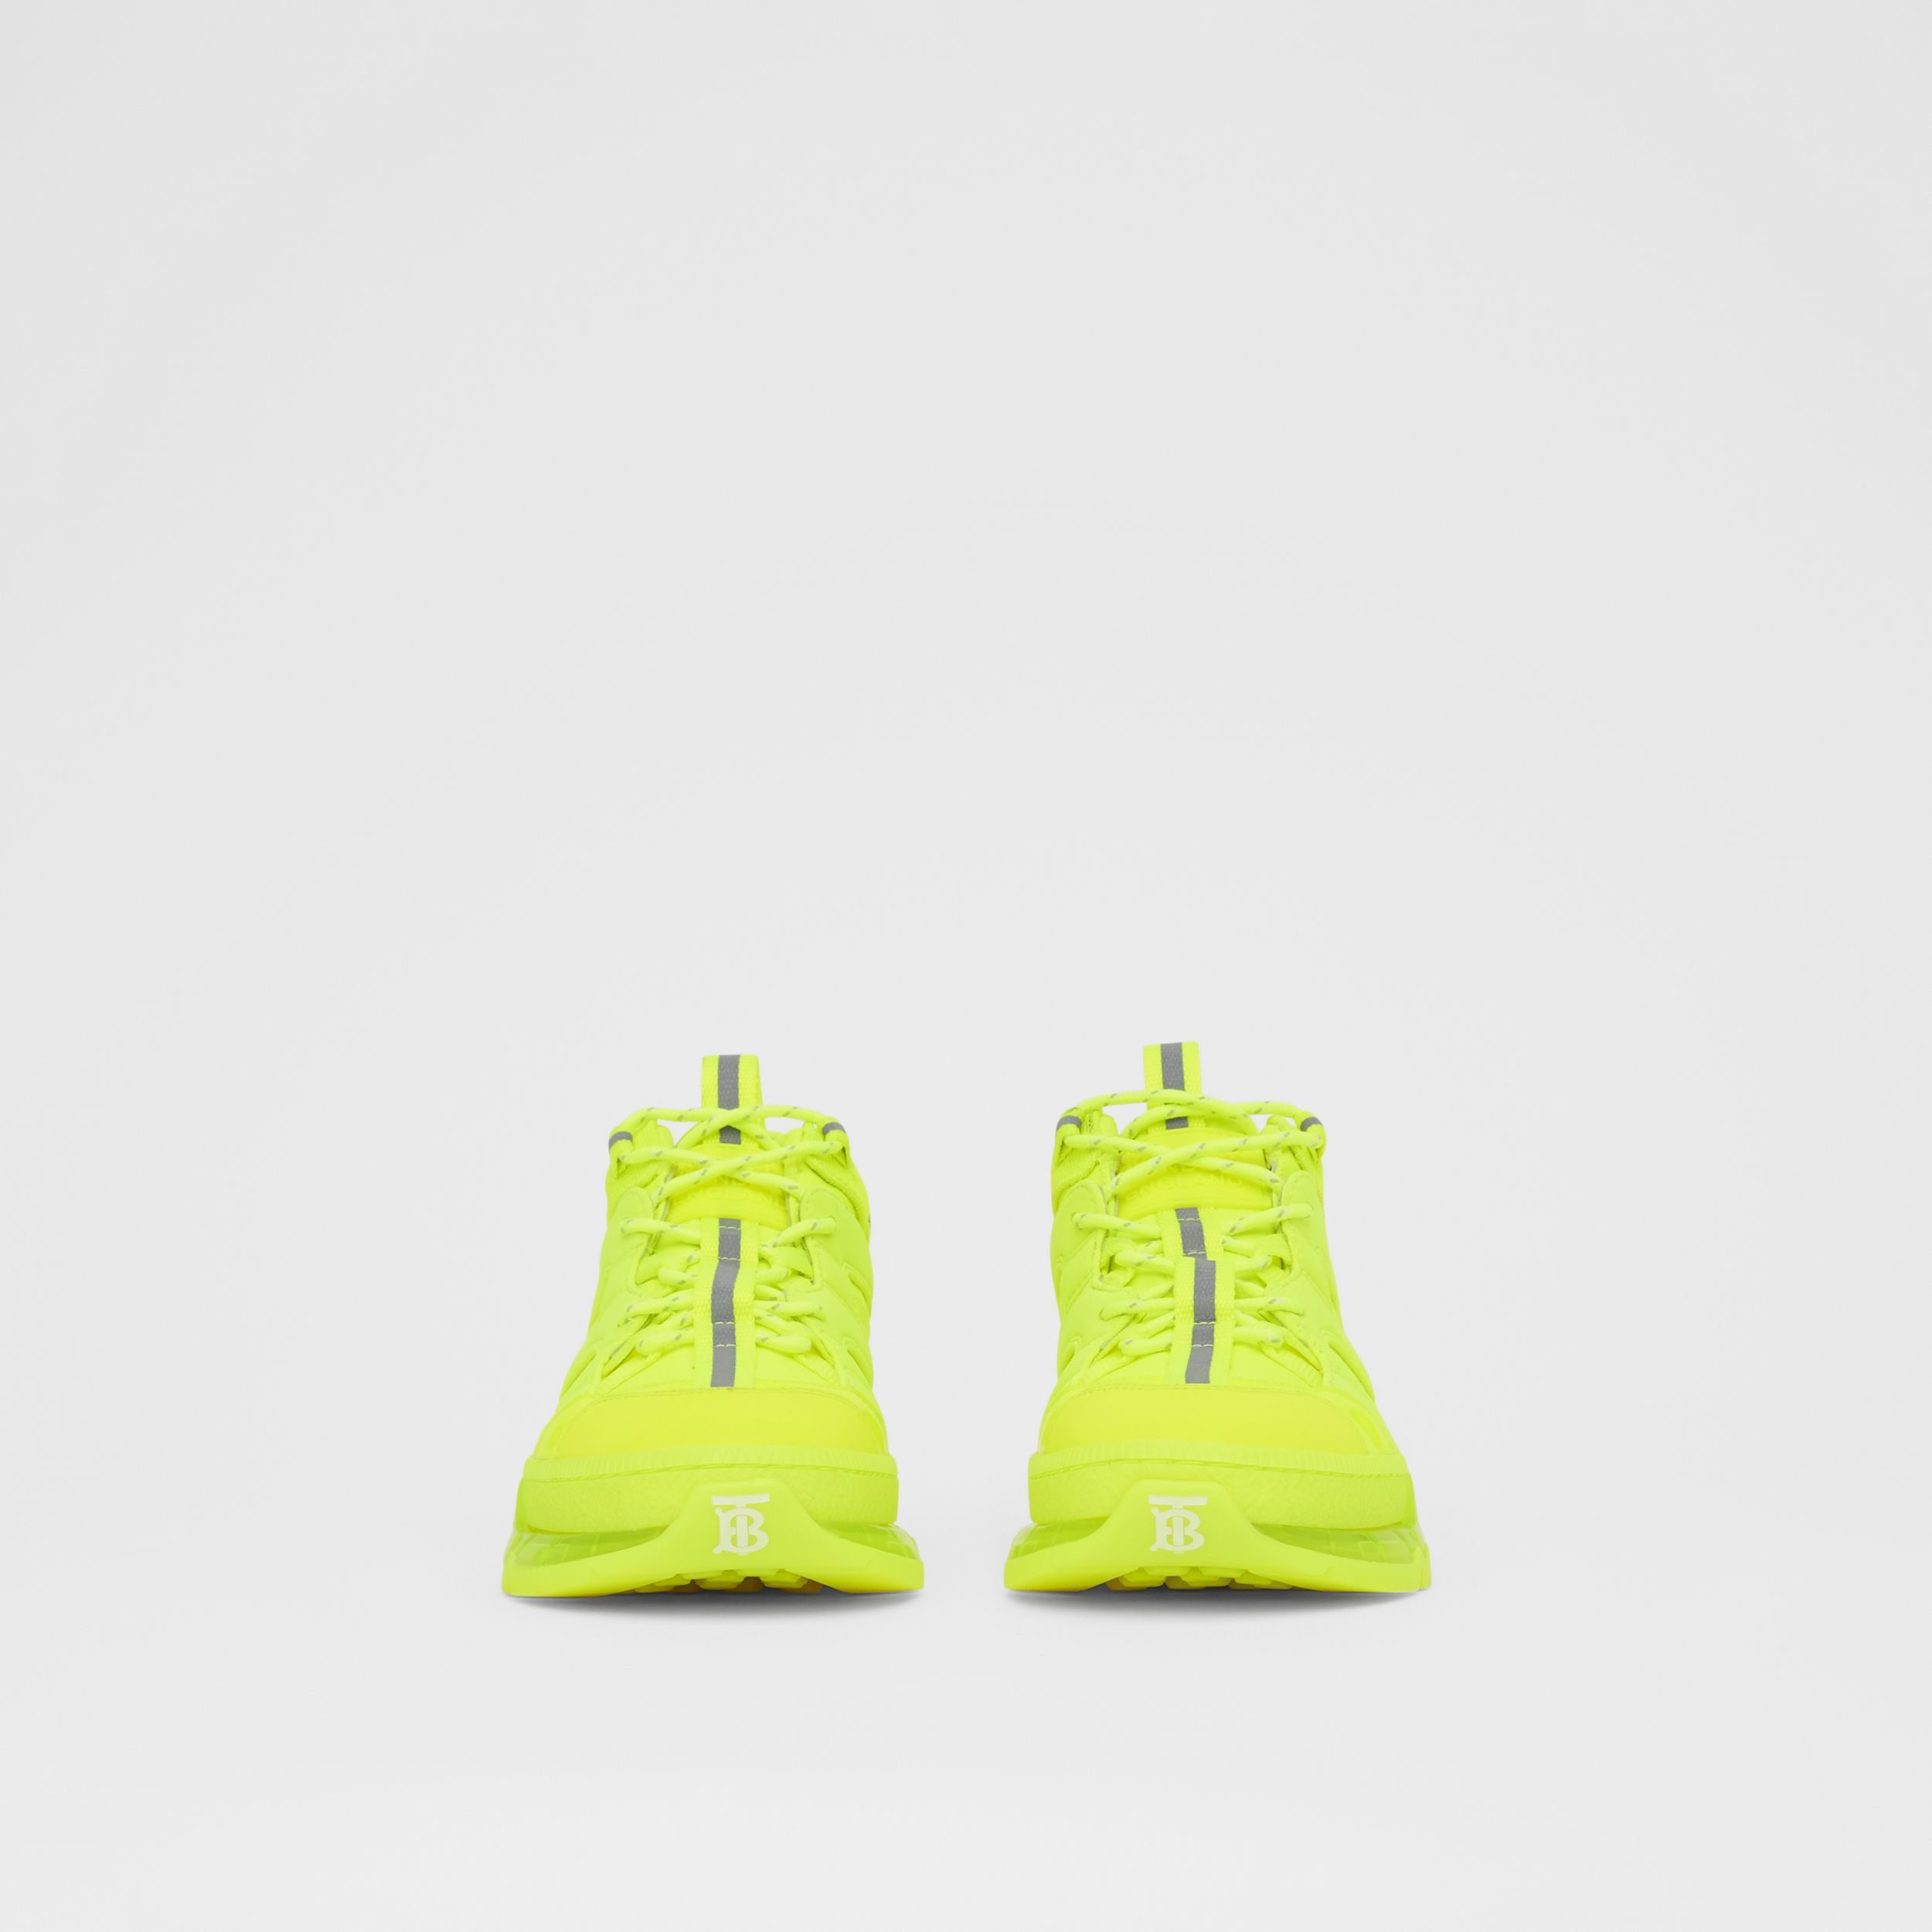 Nylon and Cotton Union Sneakers in Fluorescent Yellow - Women | Burberry - 4